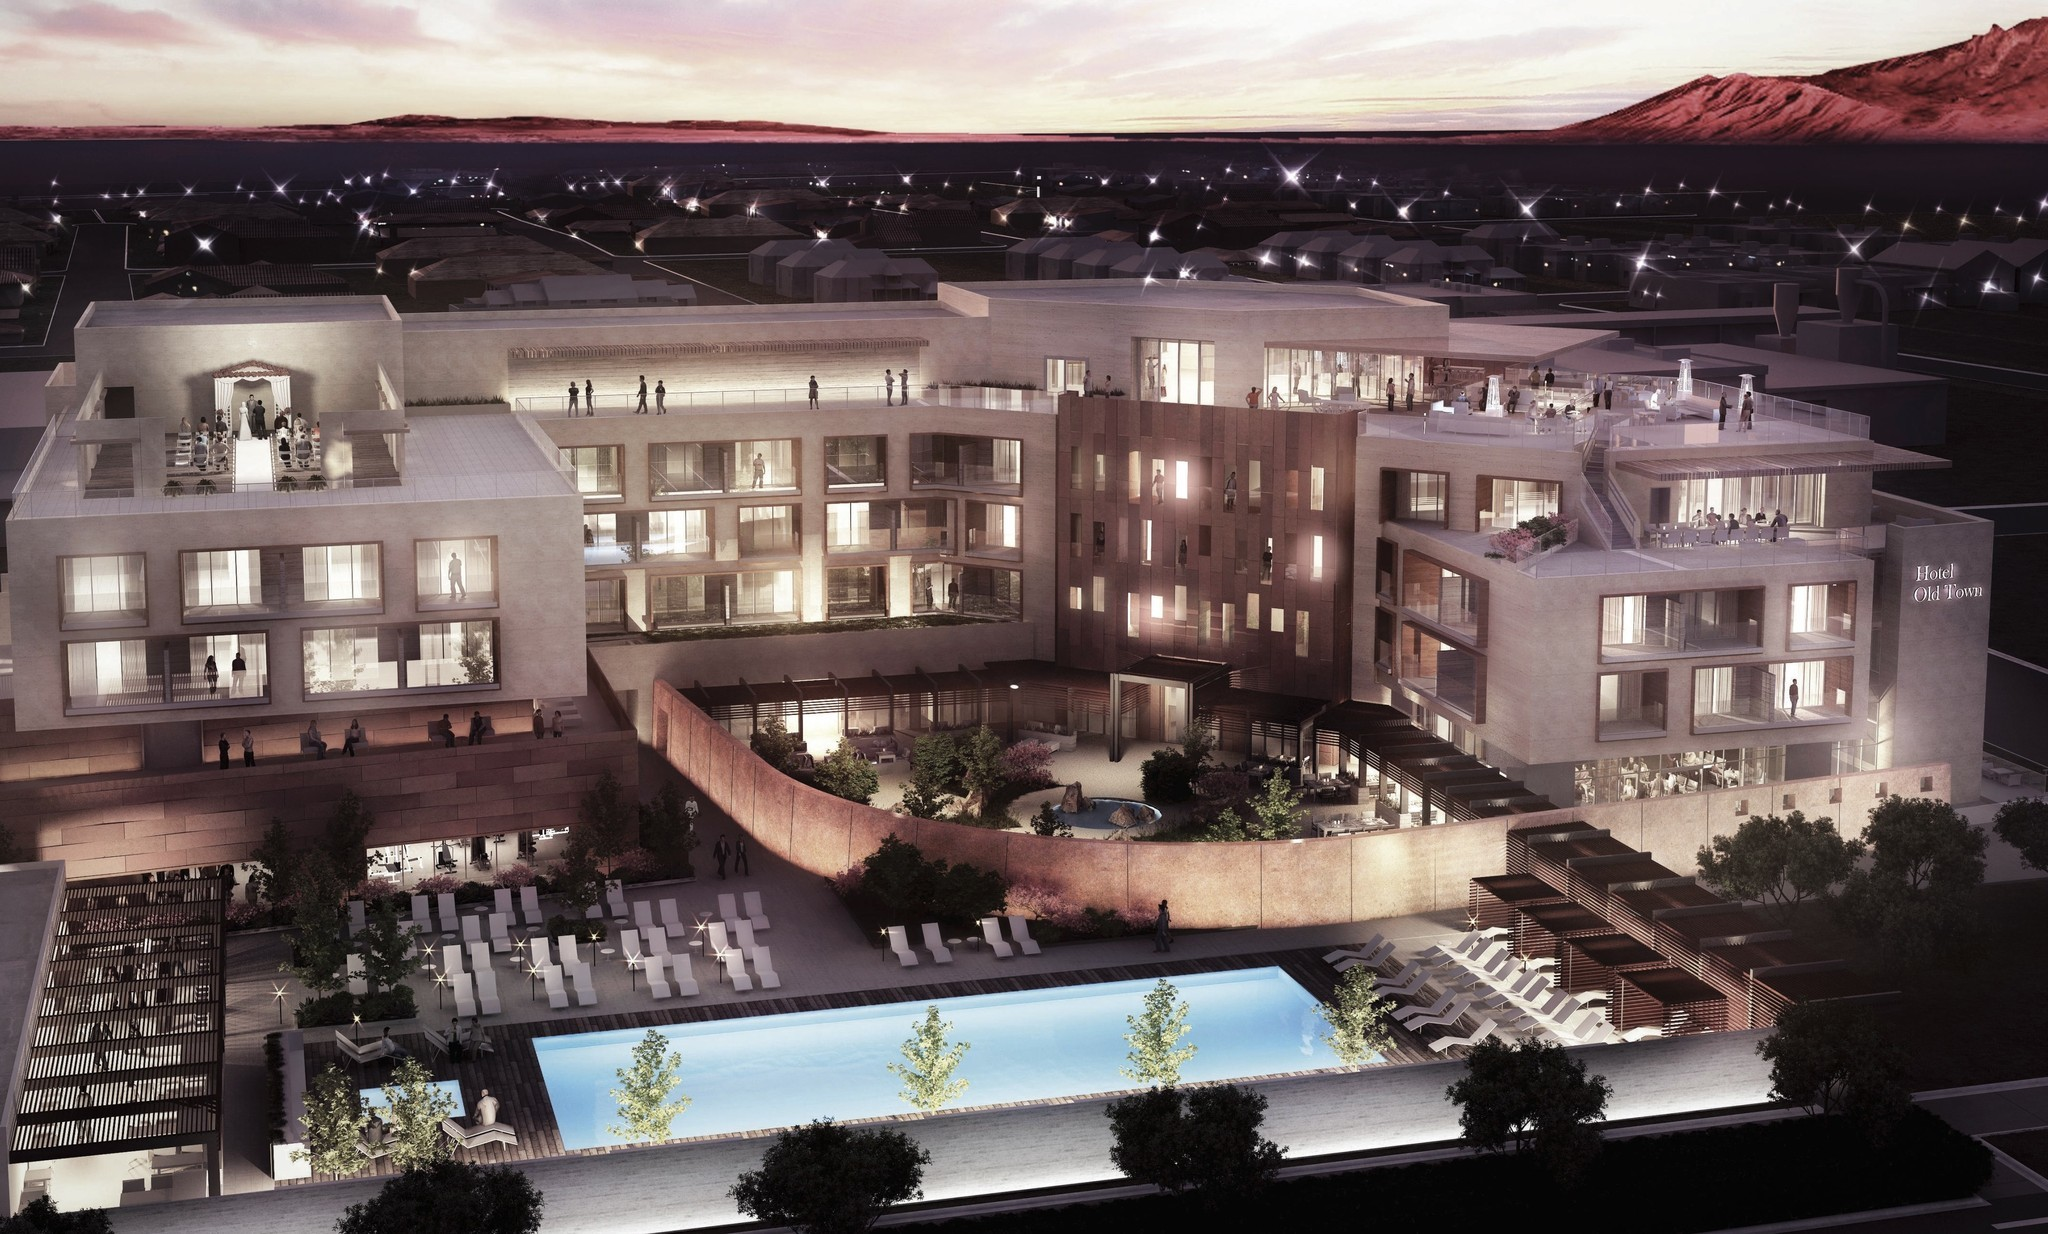 New Mexico Albuquerque To Gain Modern Hotel Inspired By The Ancients La Times